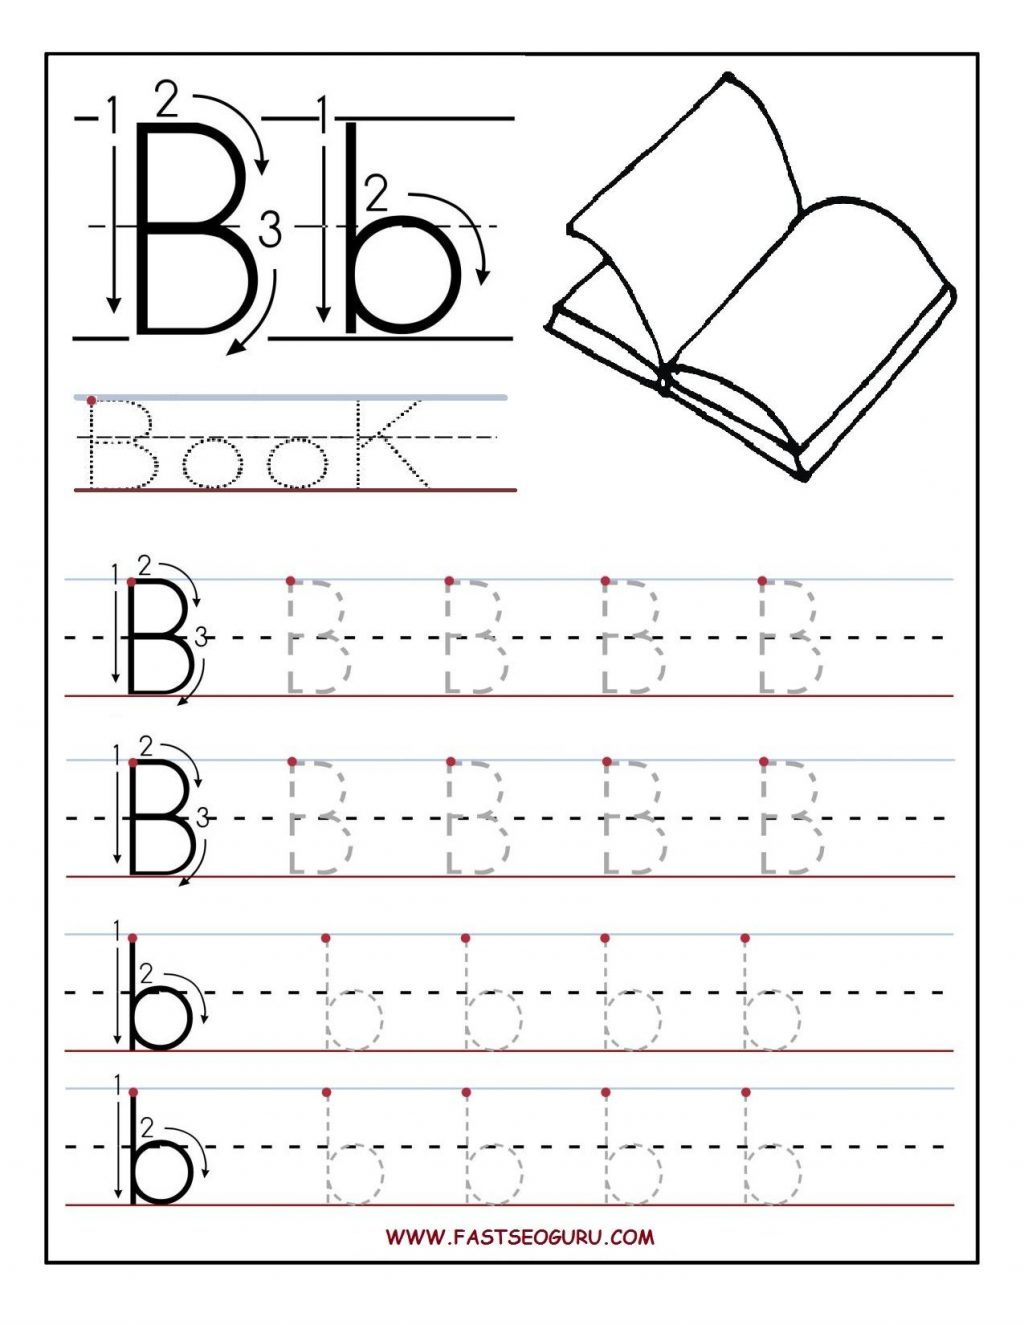 Worksheet ~ Worksheet Ideas Printable Letter Tracing pertaining to Letter K Tracing Sheet